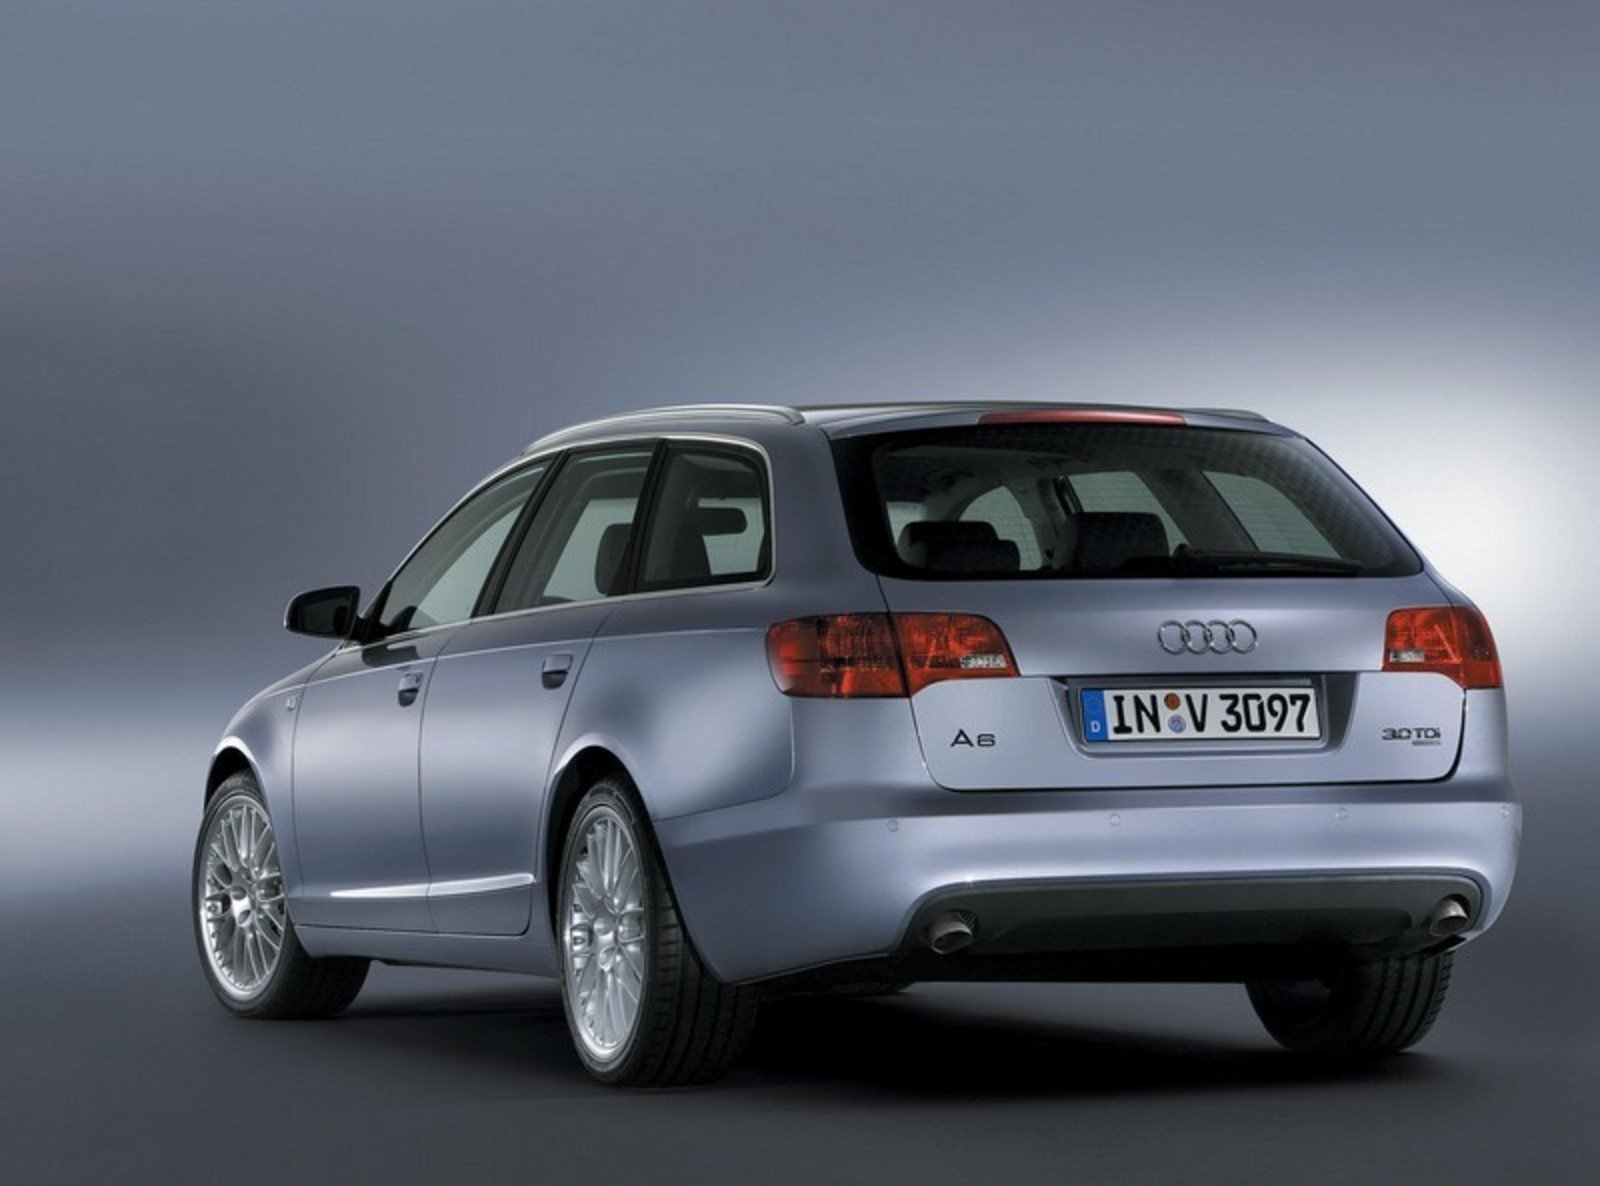 2006 audi a6 wagon picture 45300 car review top speed. Black Bedroom Furniture Sets. Home Design Ideas